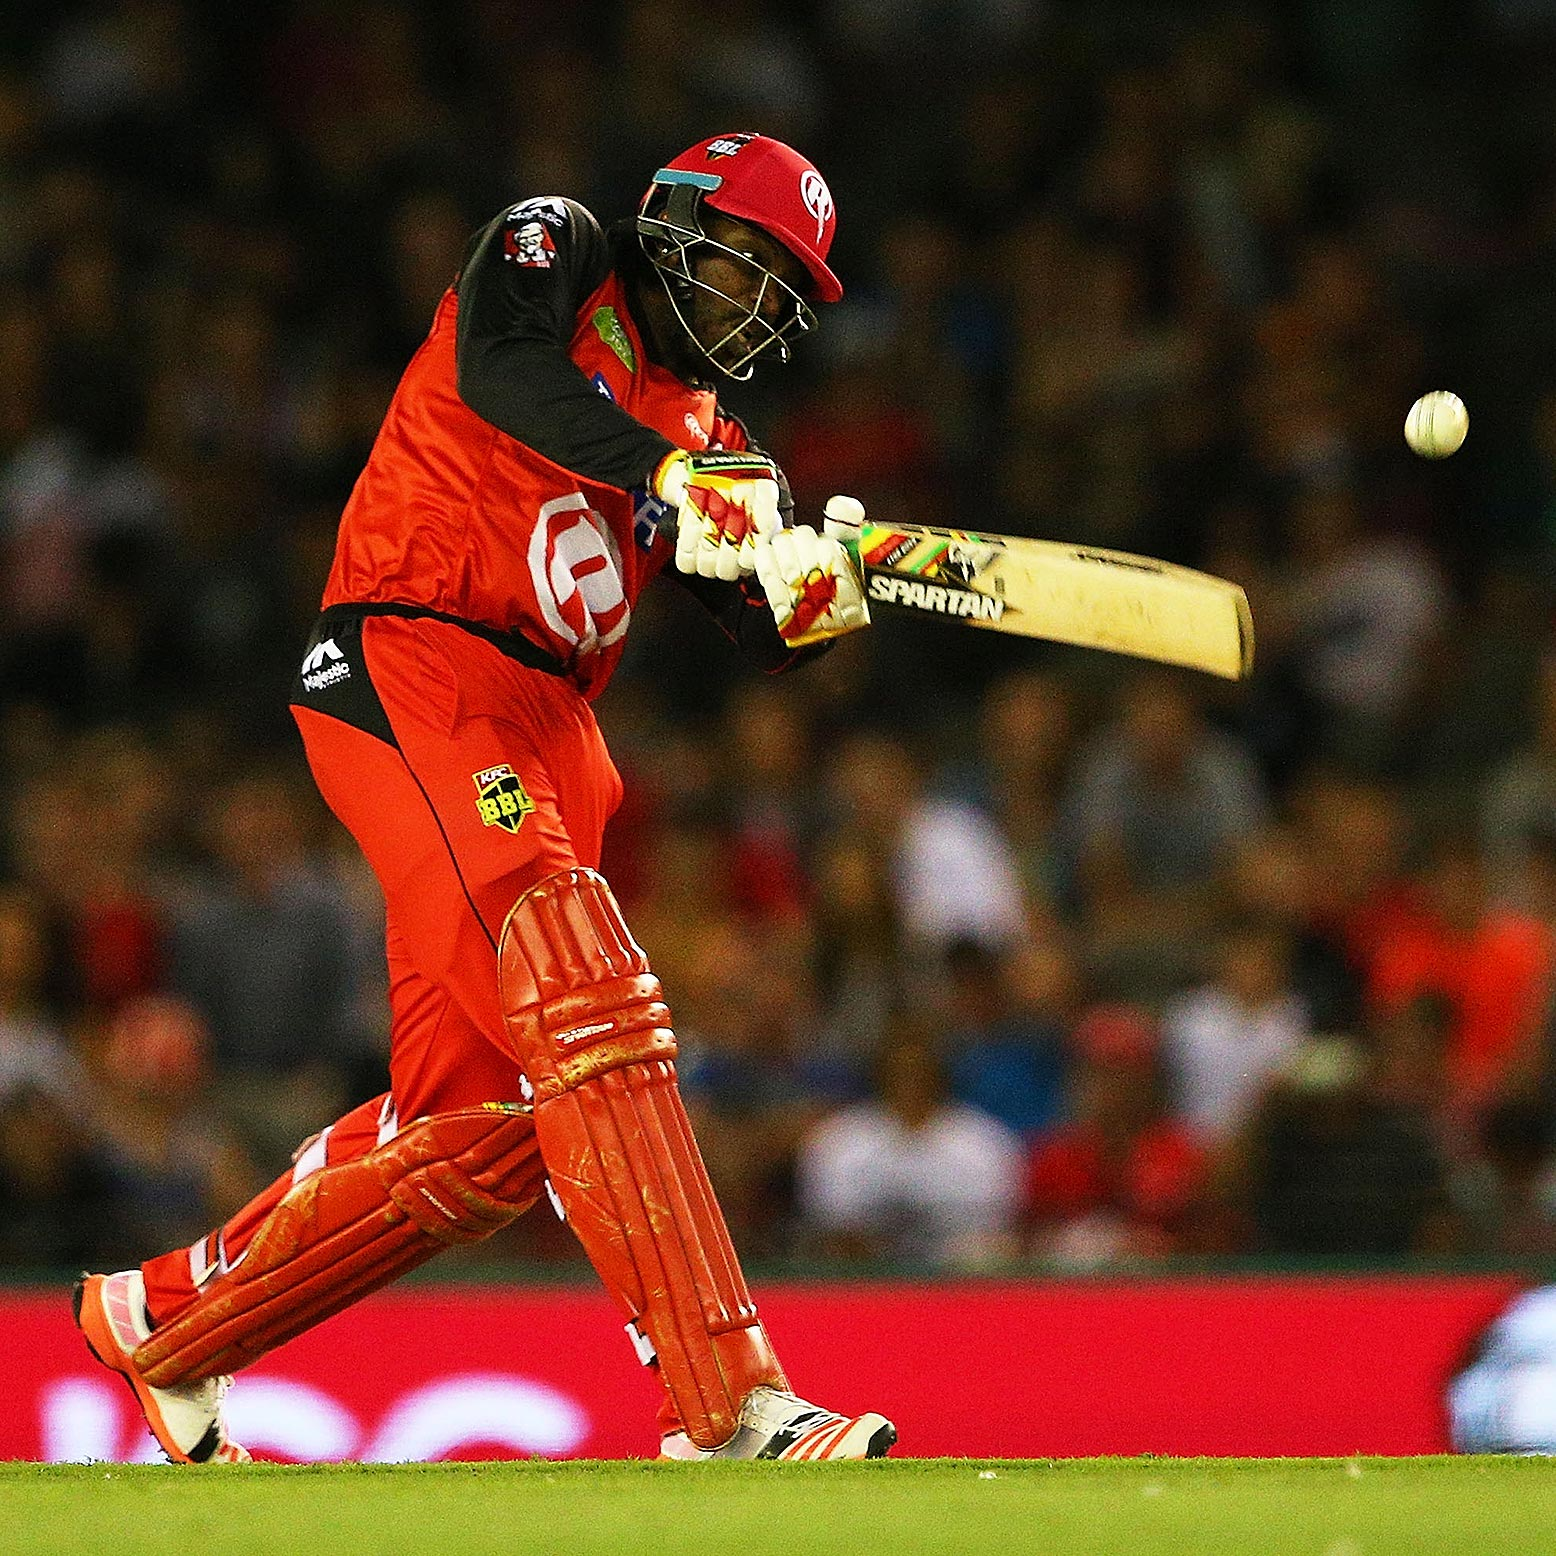 Gayle launches another six // Getty